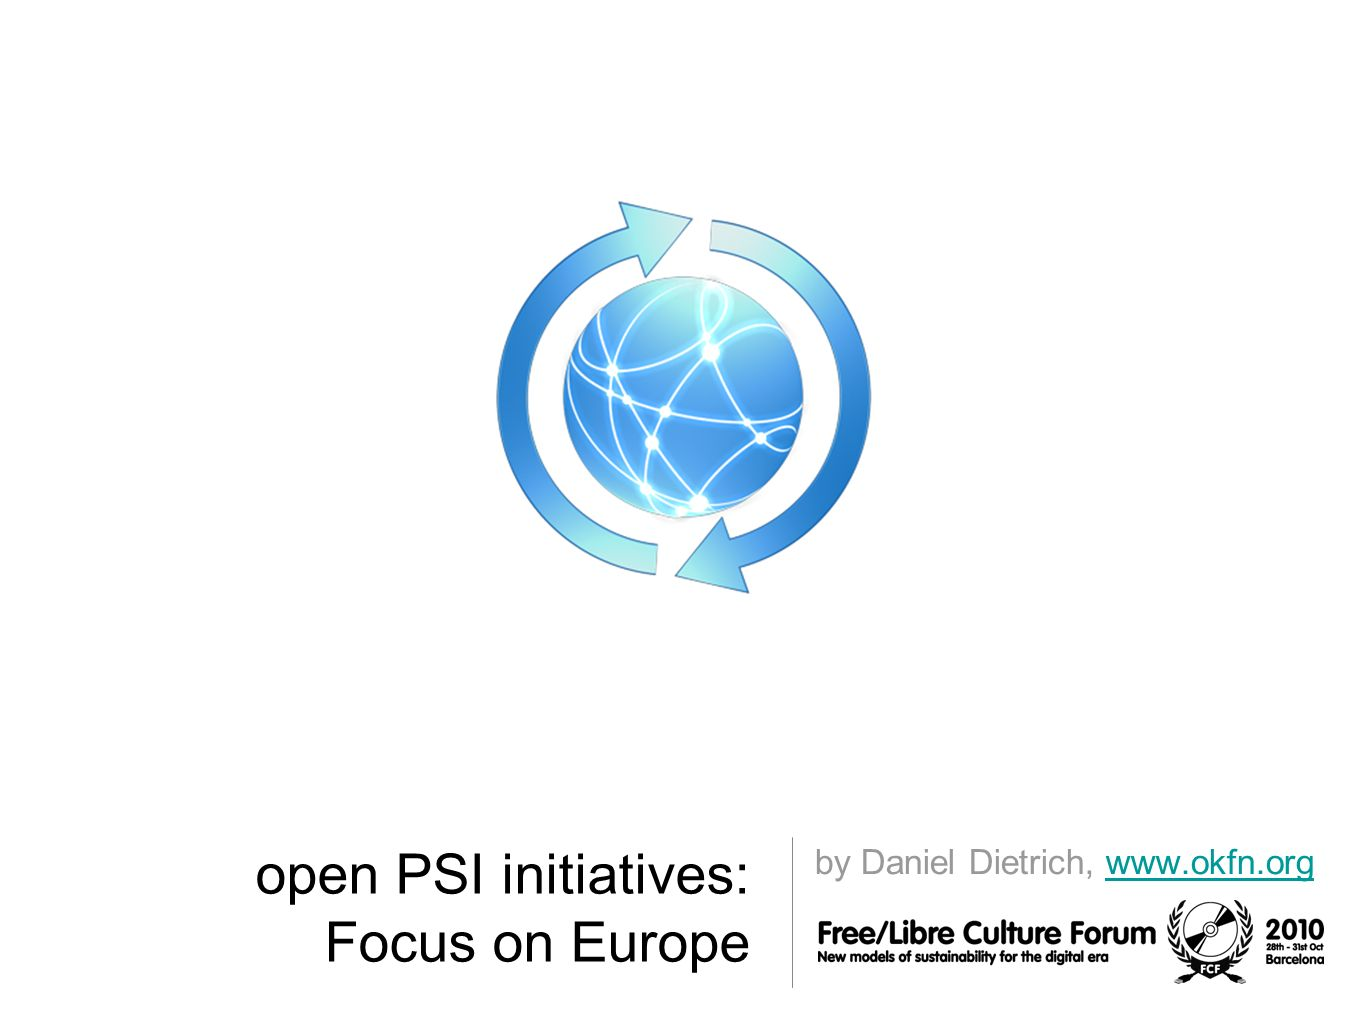 open PSI initiatives: Focus on Europe by Daniel Dietrich, www.okfn.orgwww.okfn.org